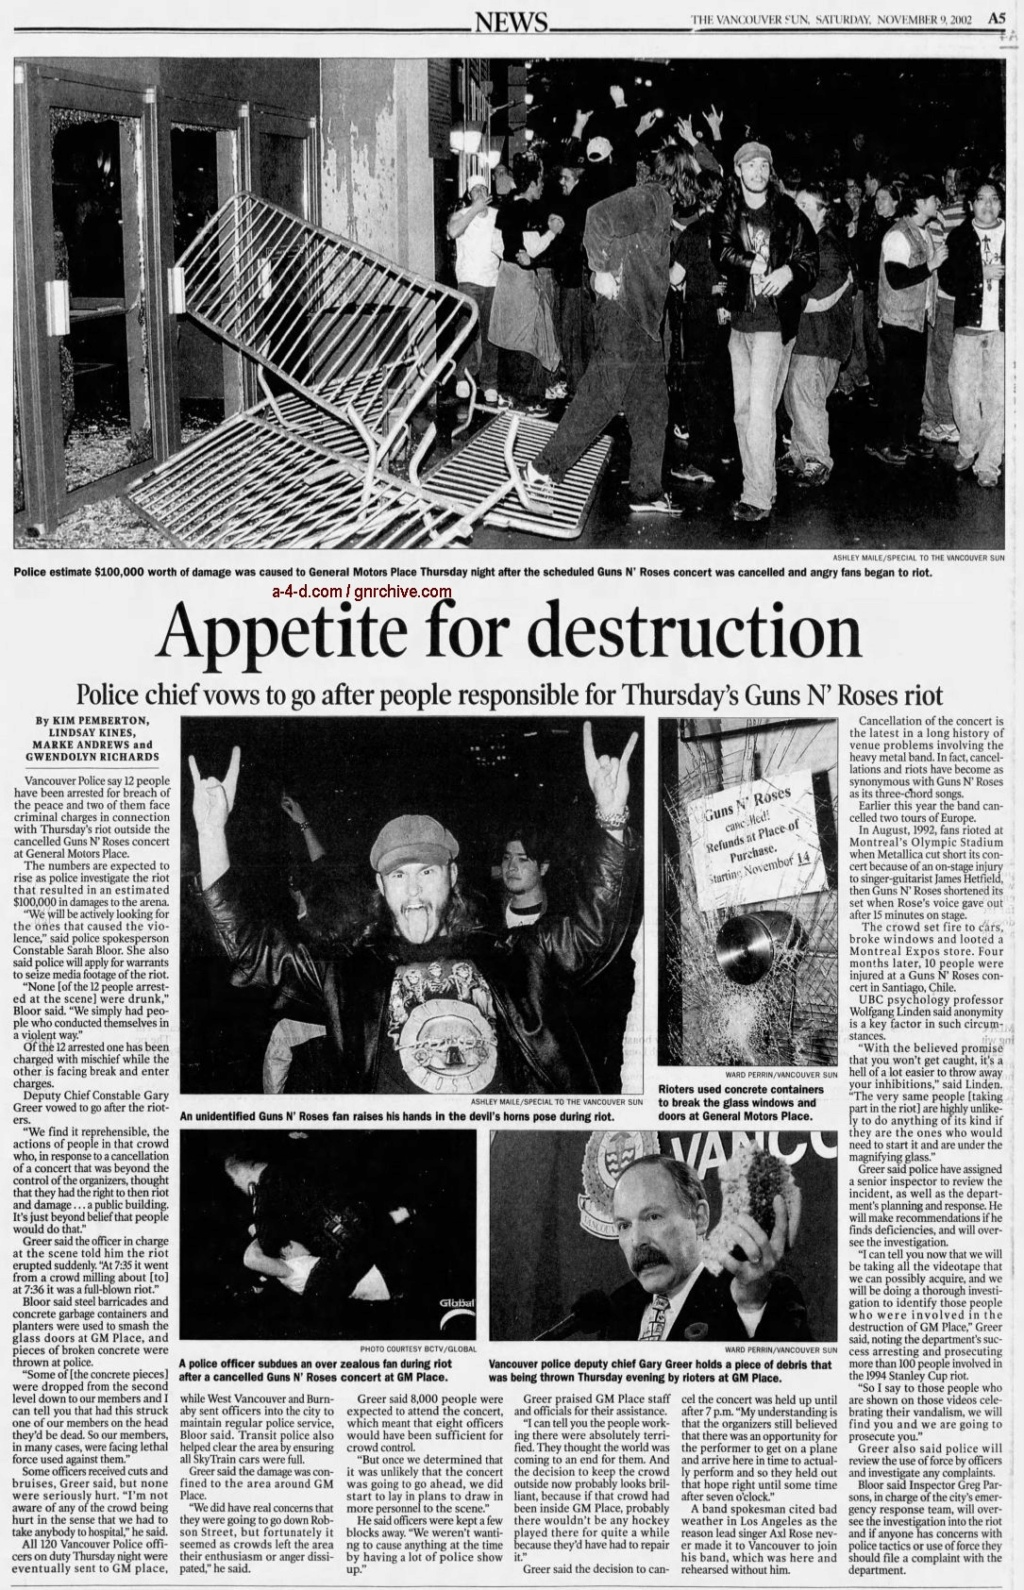 2002.11.08-13 - The Vancouver Sun - Reports on the riot in Vancouver 2002_117